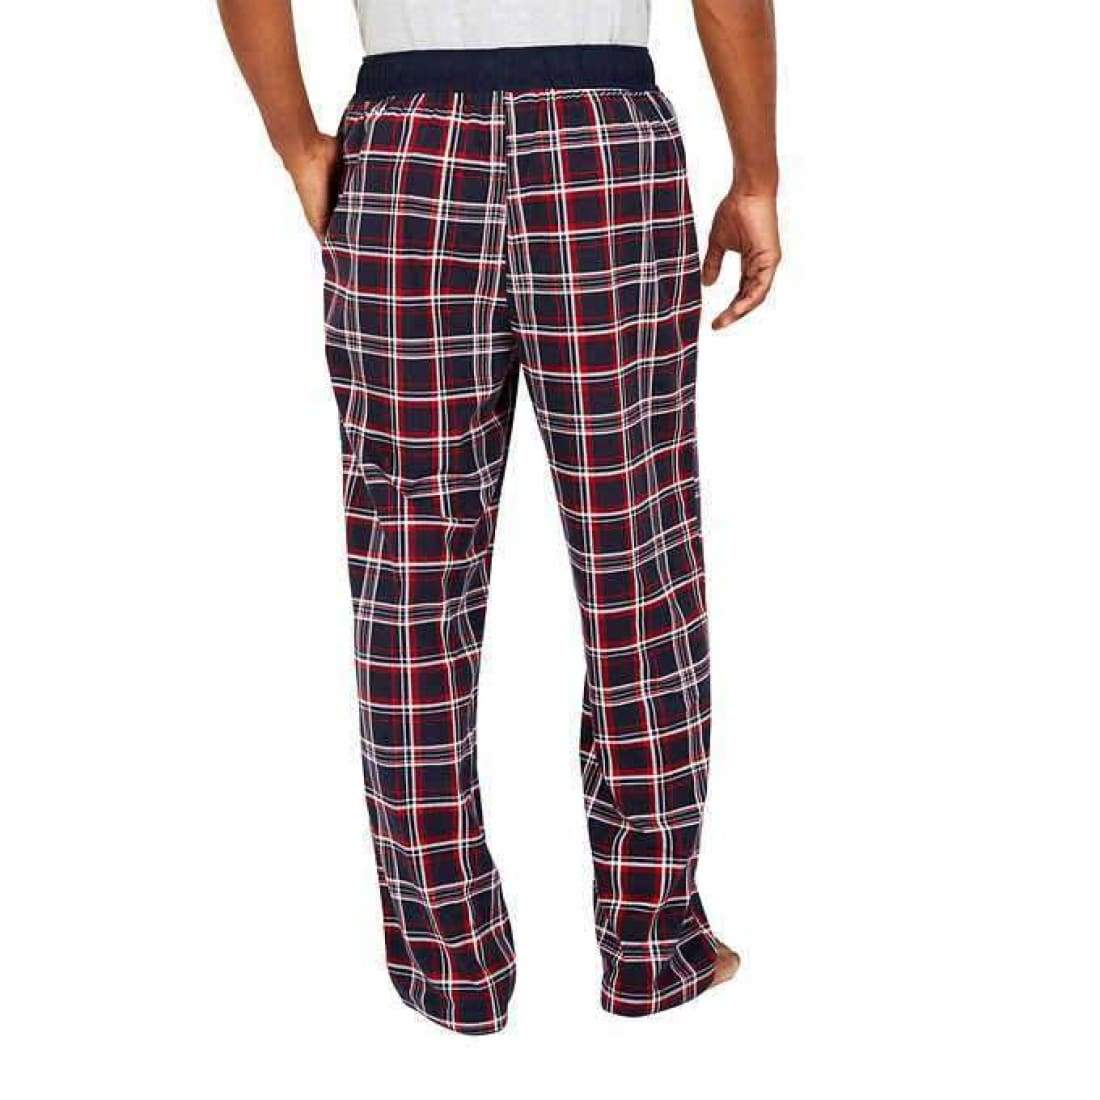 Nautica Mens 2-Pack Fleece Pant Sleepwear